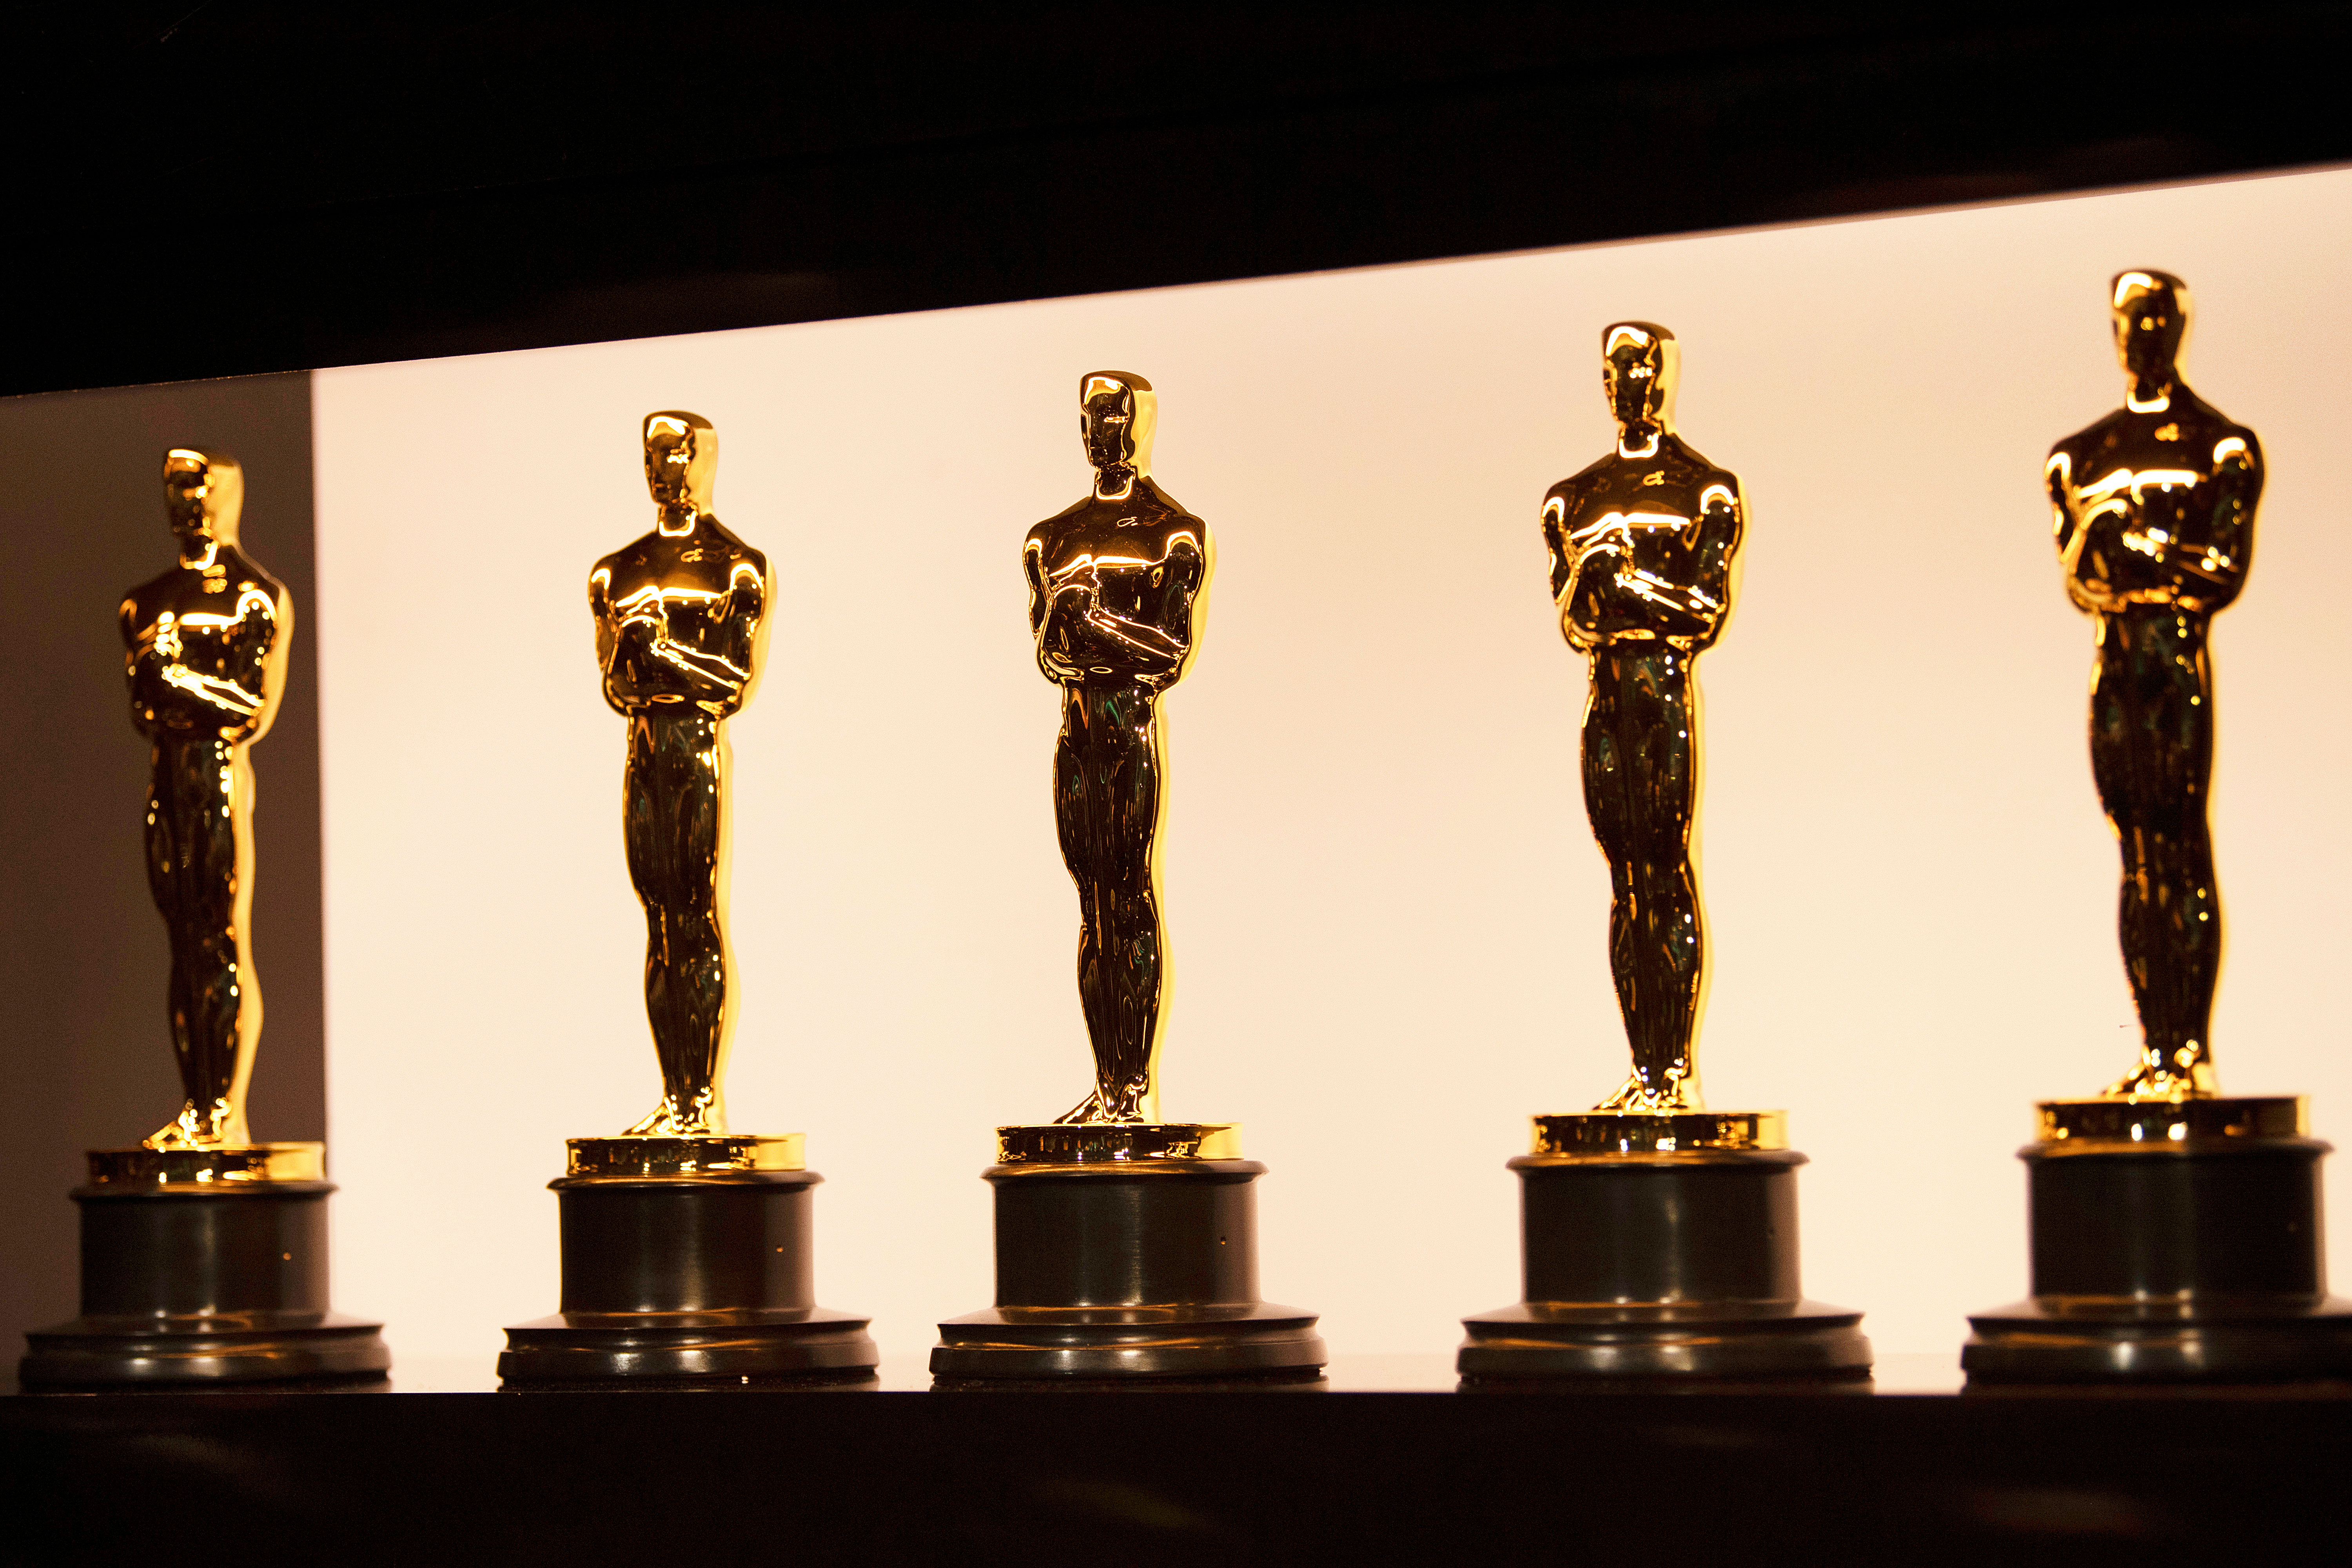 Oscar statuettes are backstage during the Academy Awards in Hollywood, California, in February 2020.